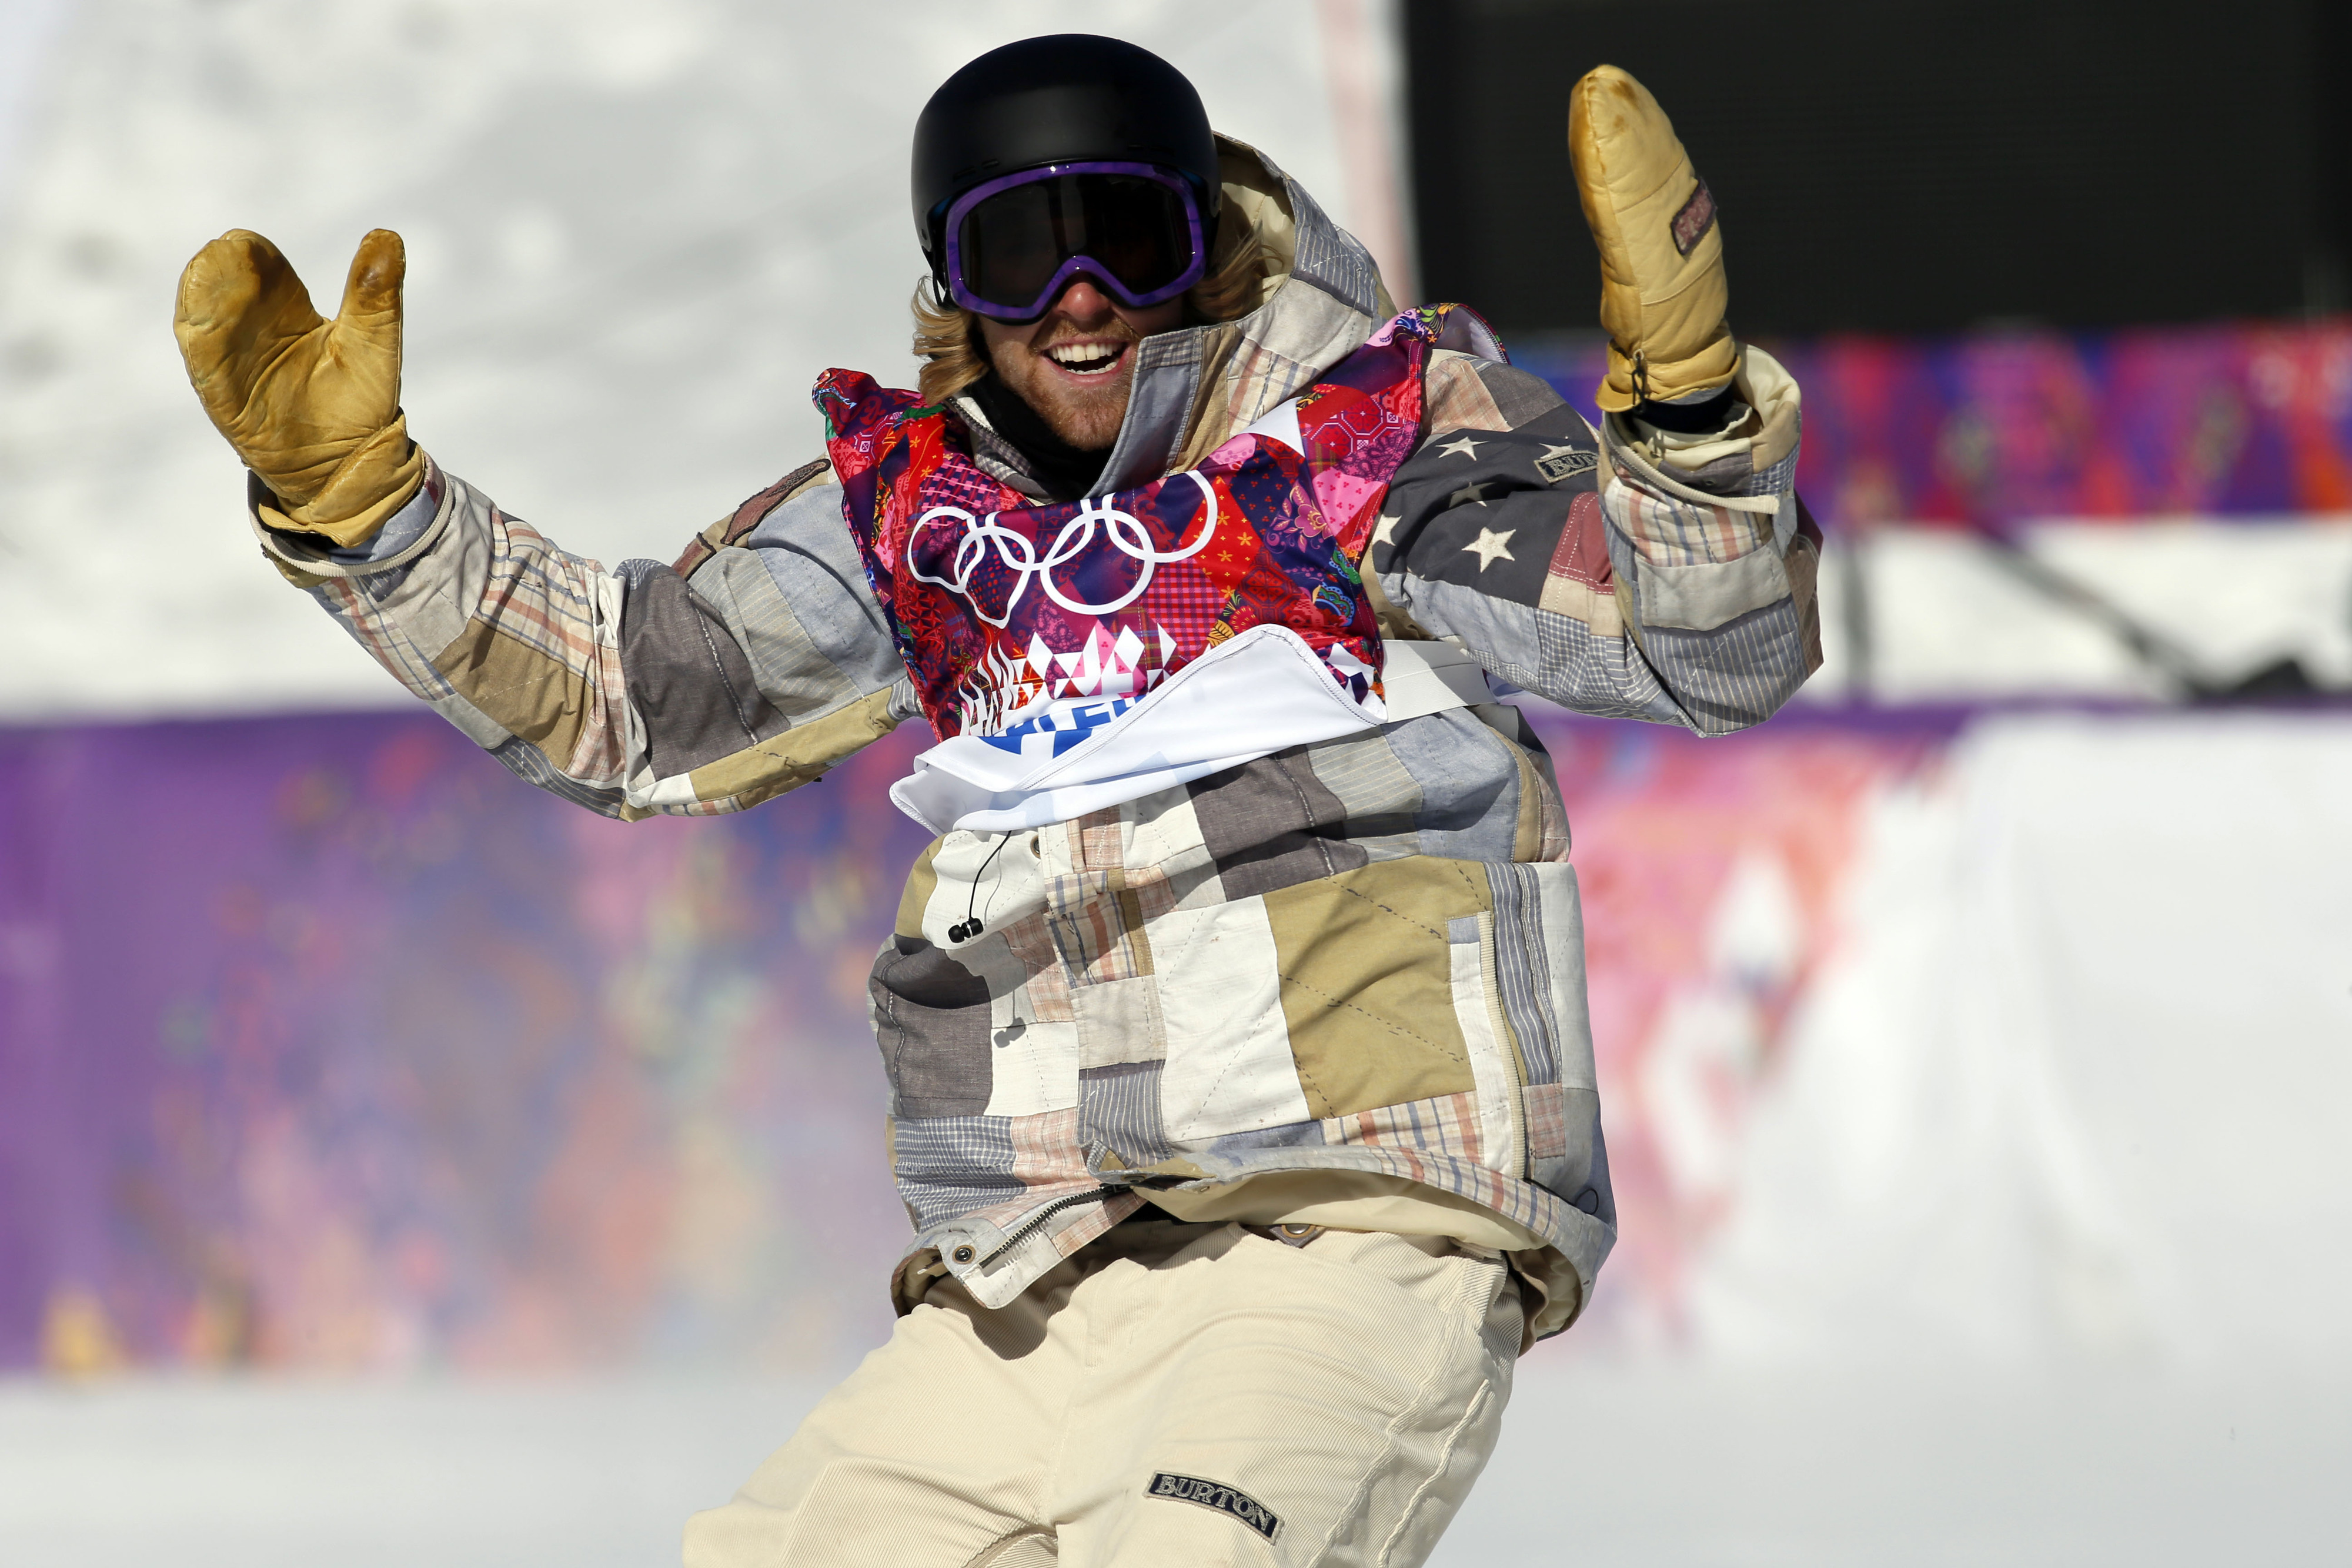 The USA won the first gold, but that's all they won on Day 2.